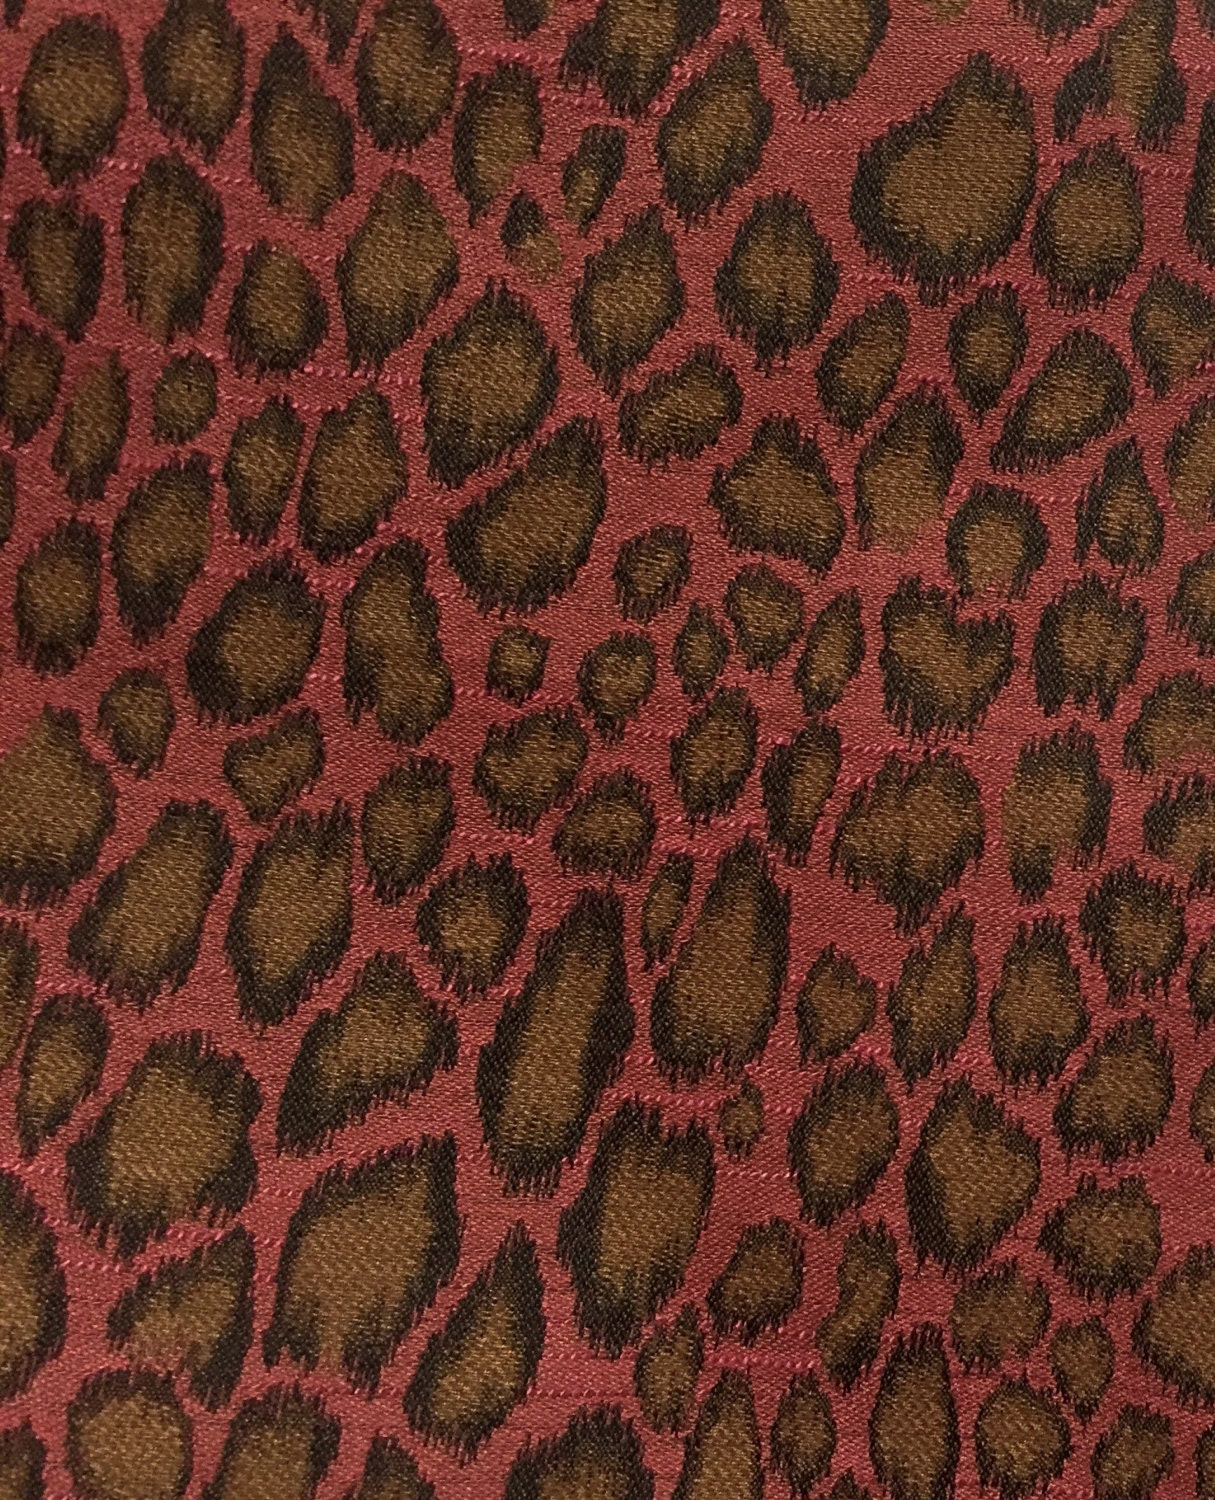 Pink Brown Leopard Animal Print Upholstery Fabric By